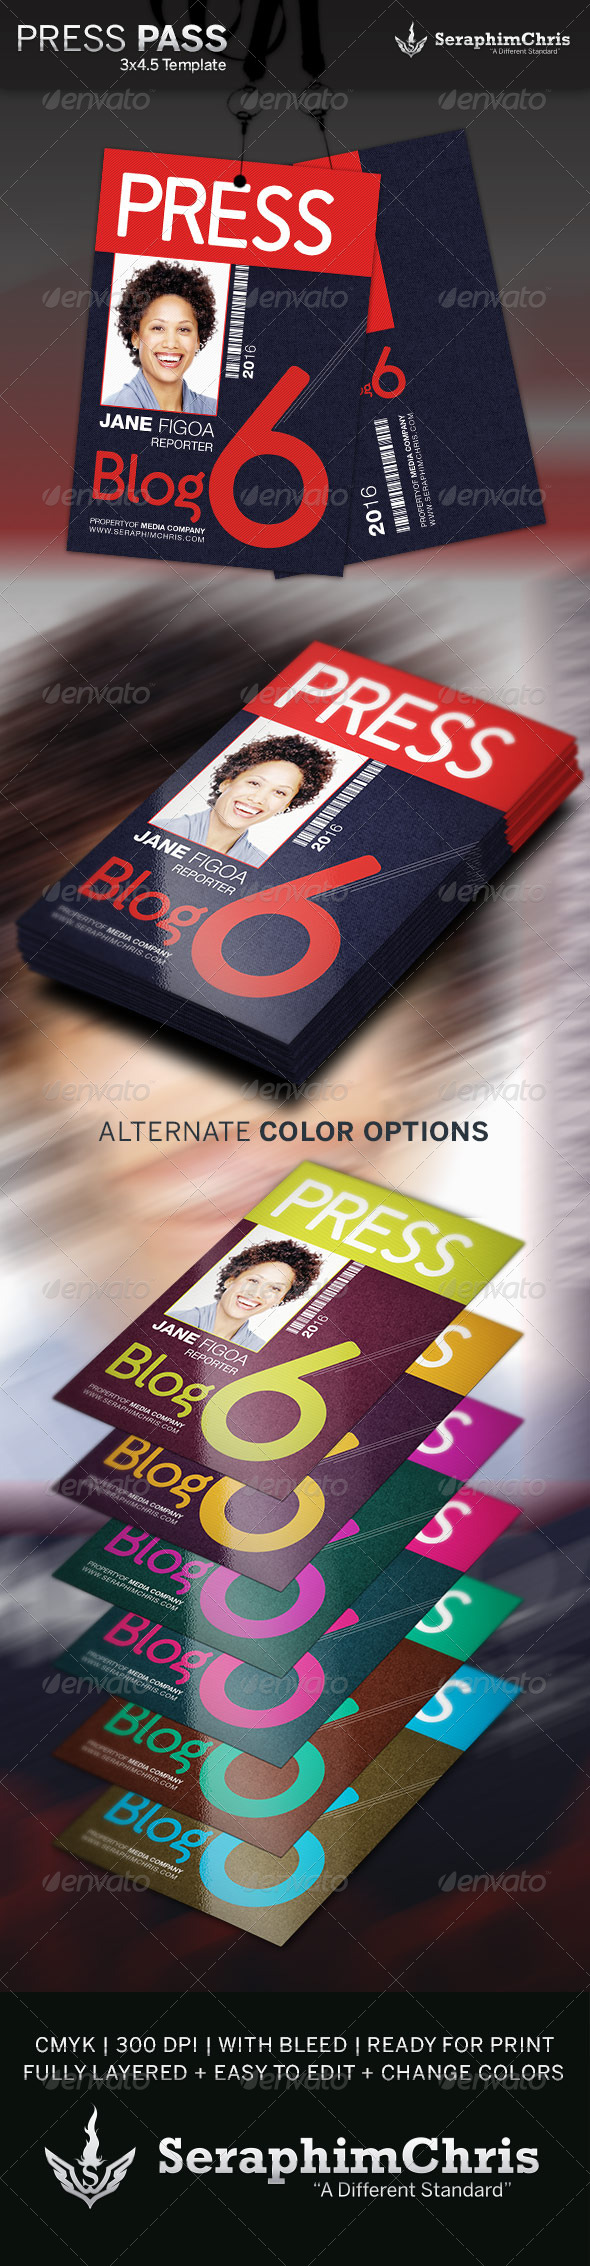 Press pass template 2 by seraphimchris graphicriver for Media pass template